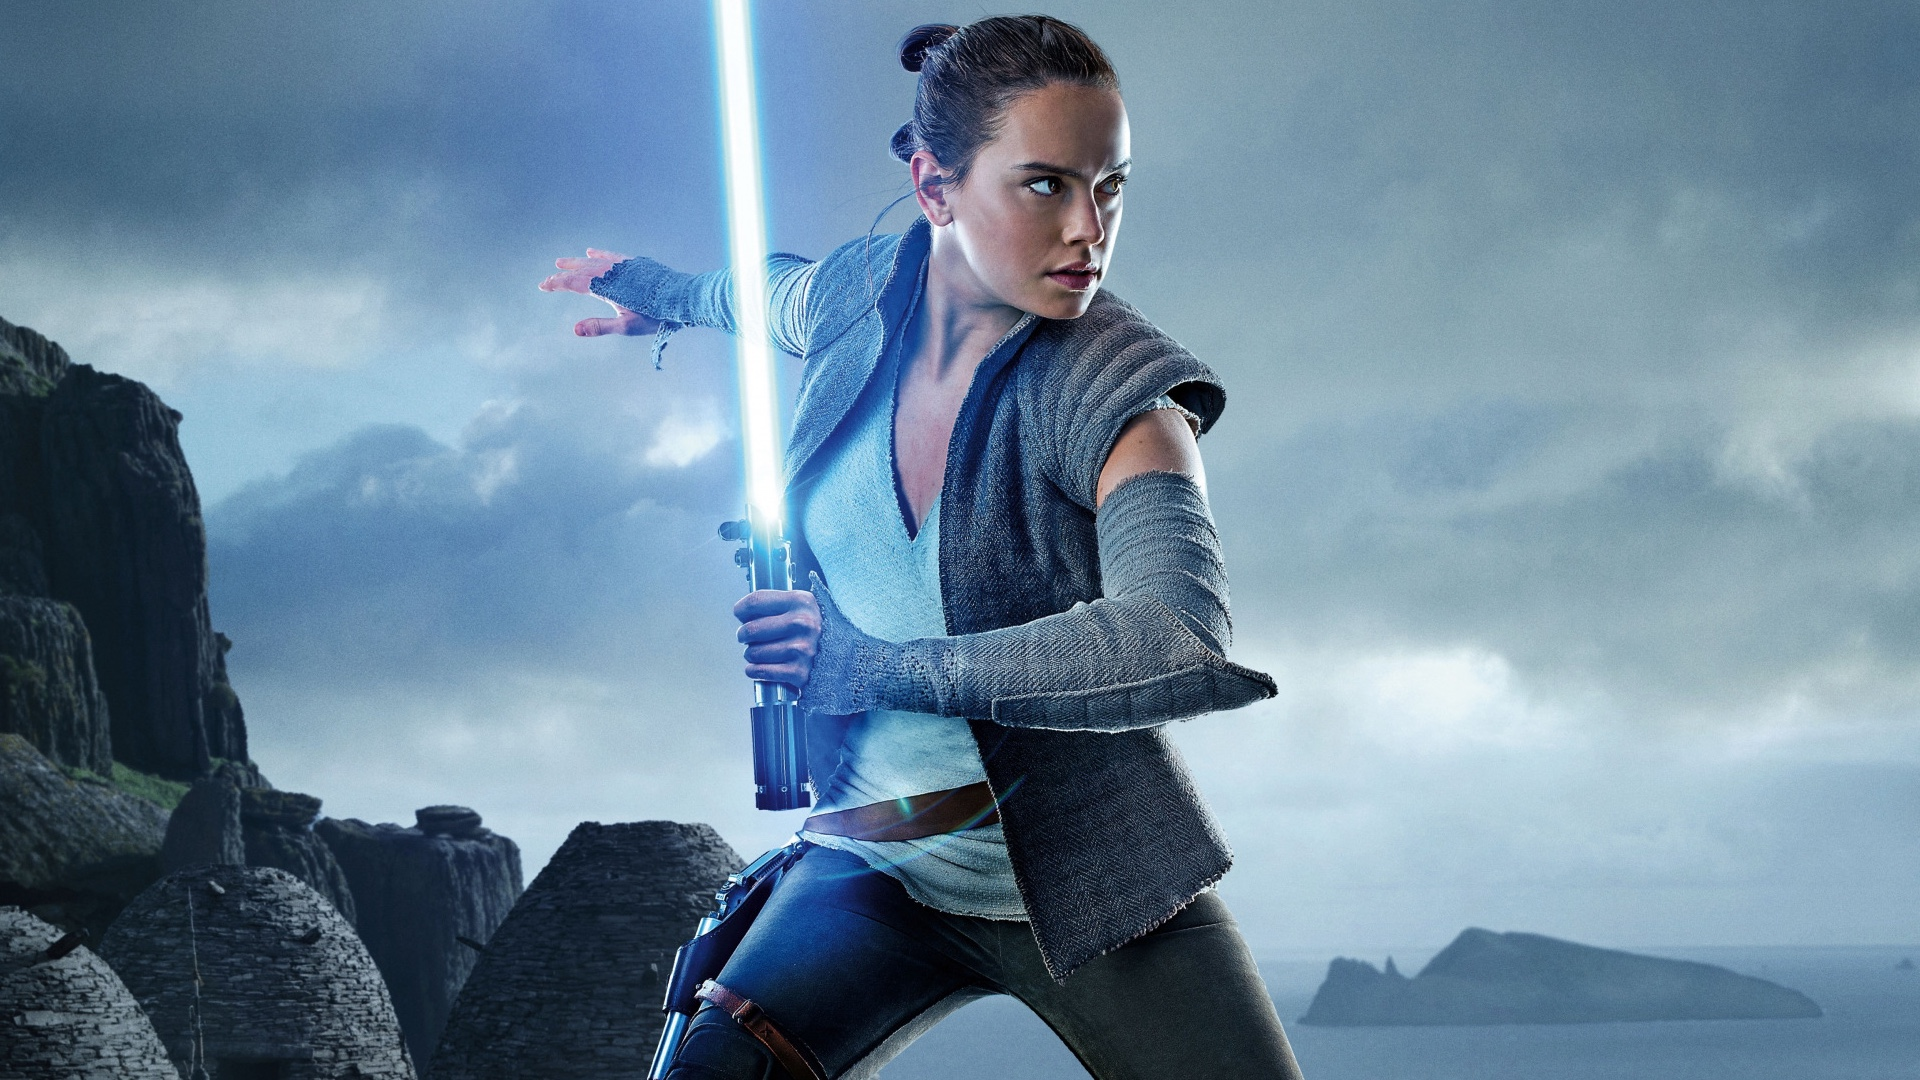 some-rumored-early-plot-details-have-surfaced-for-star-wars-episode-ix-social.jpg